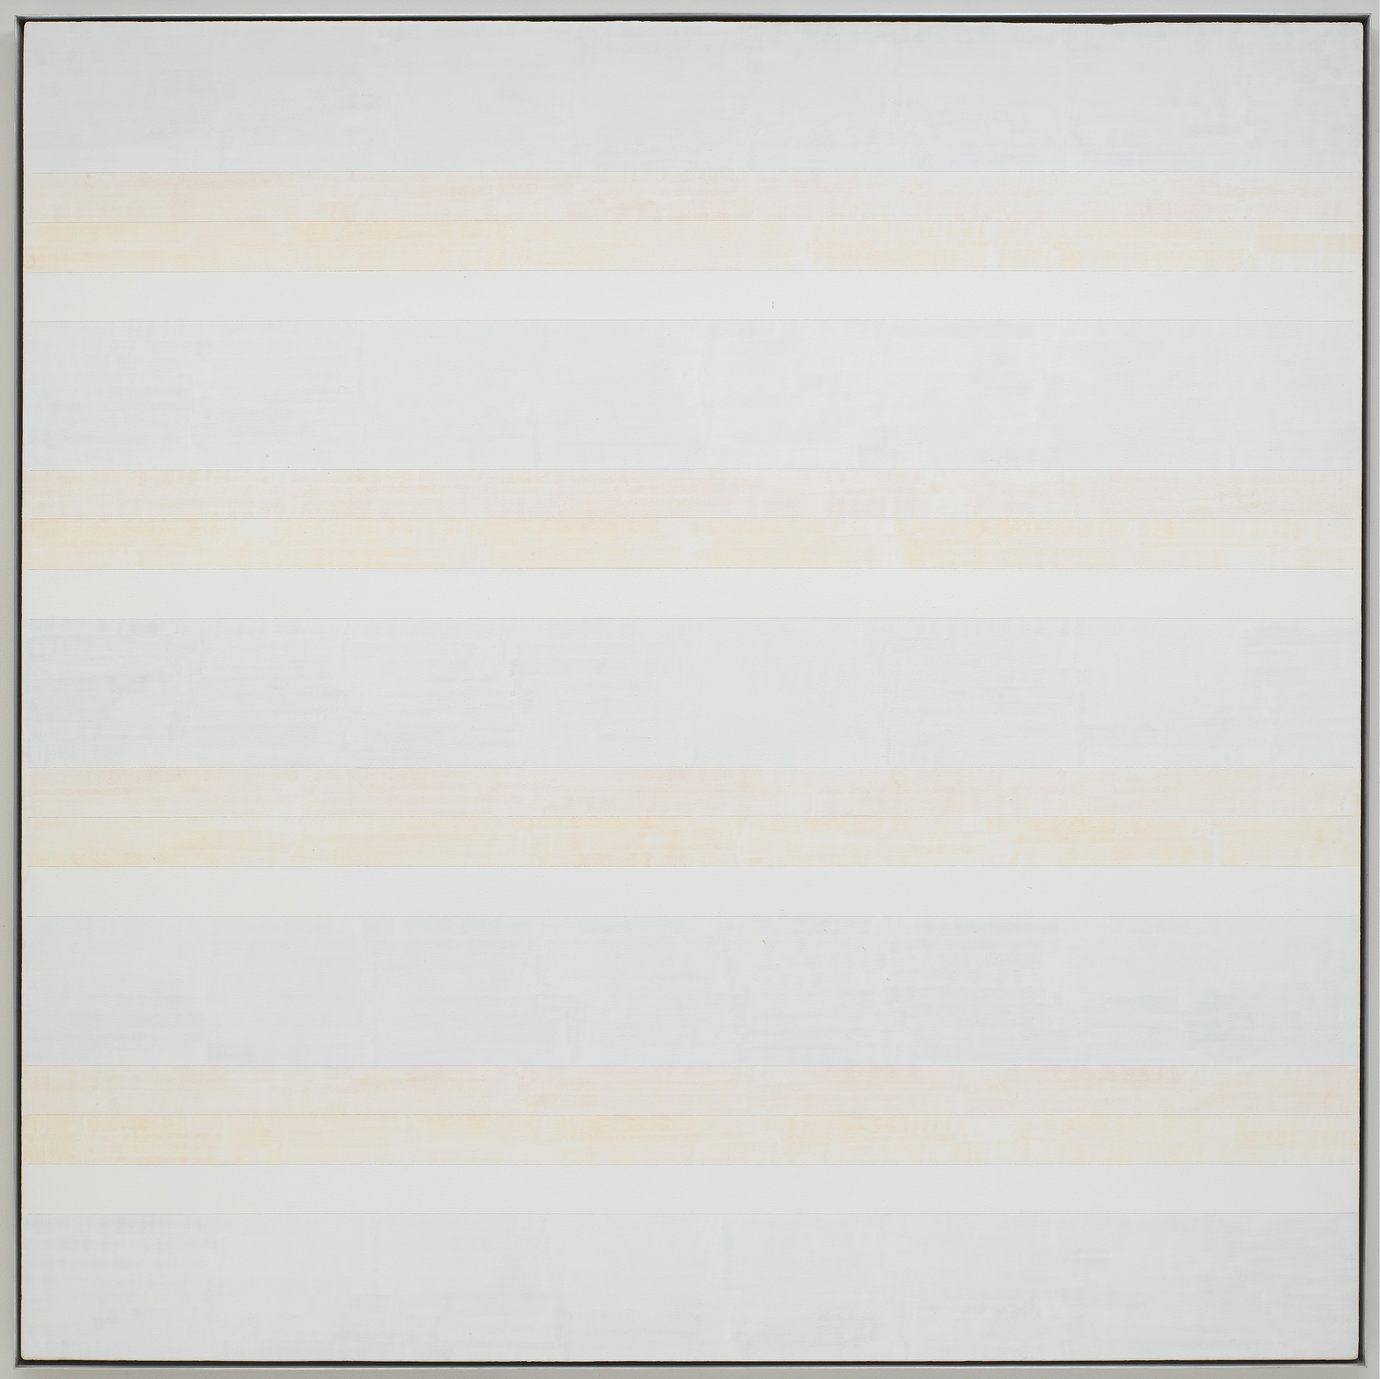 ", 1992. acrylic and graphite on linen, 72 x 72"" (182.9 x 182.9 cm)."